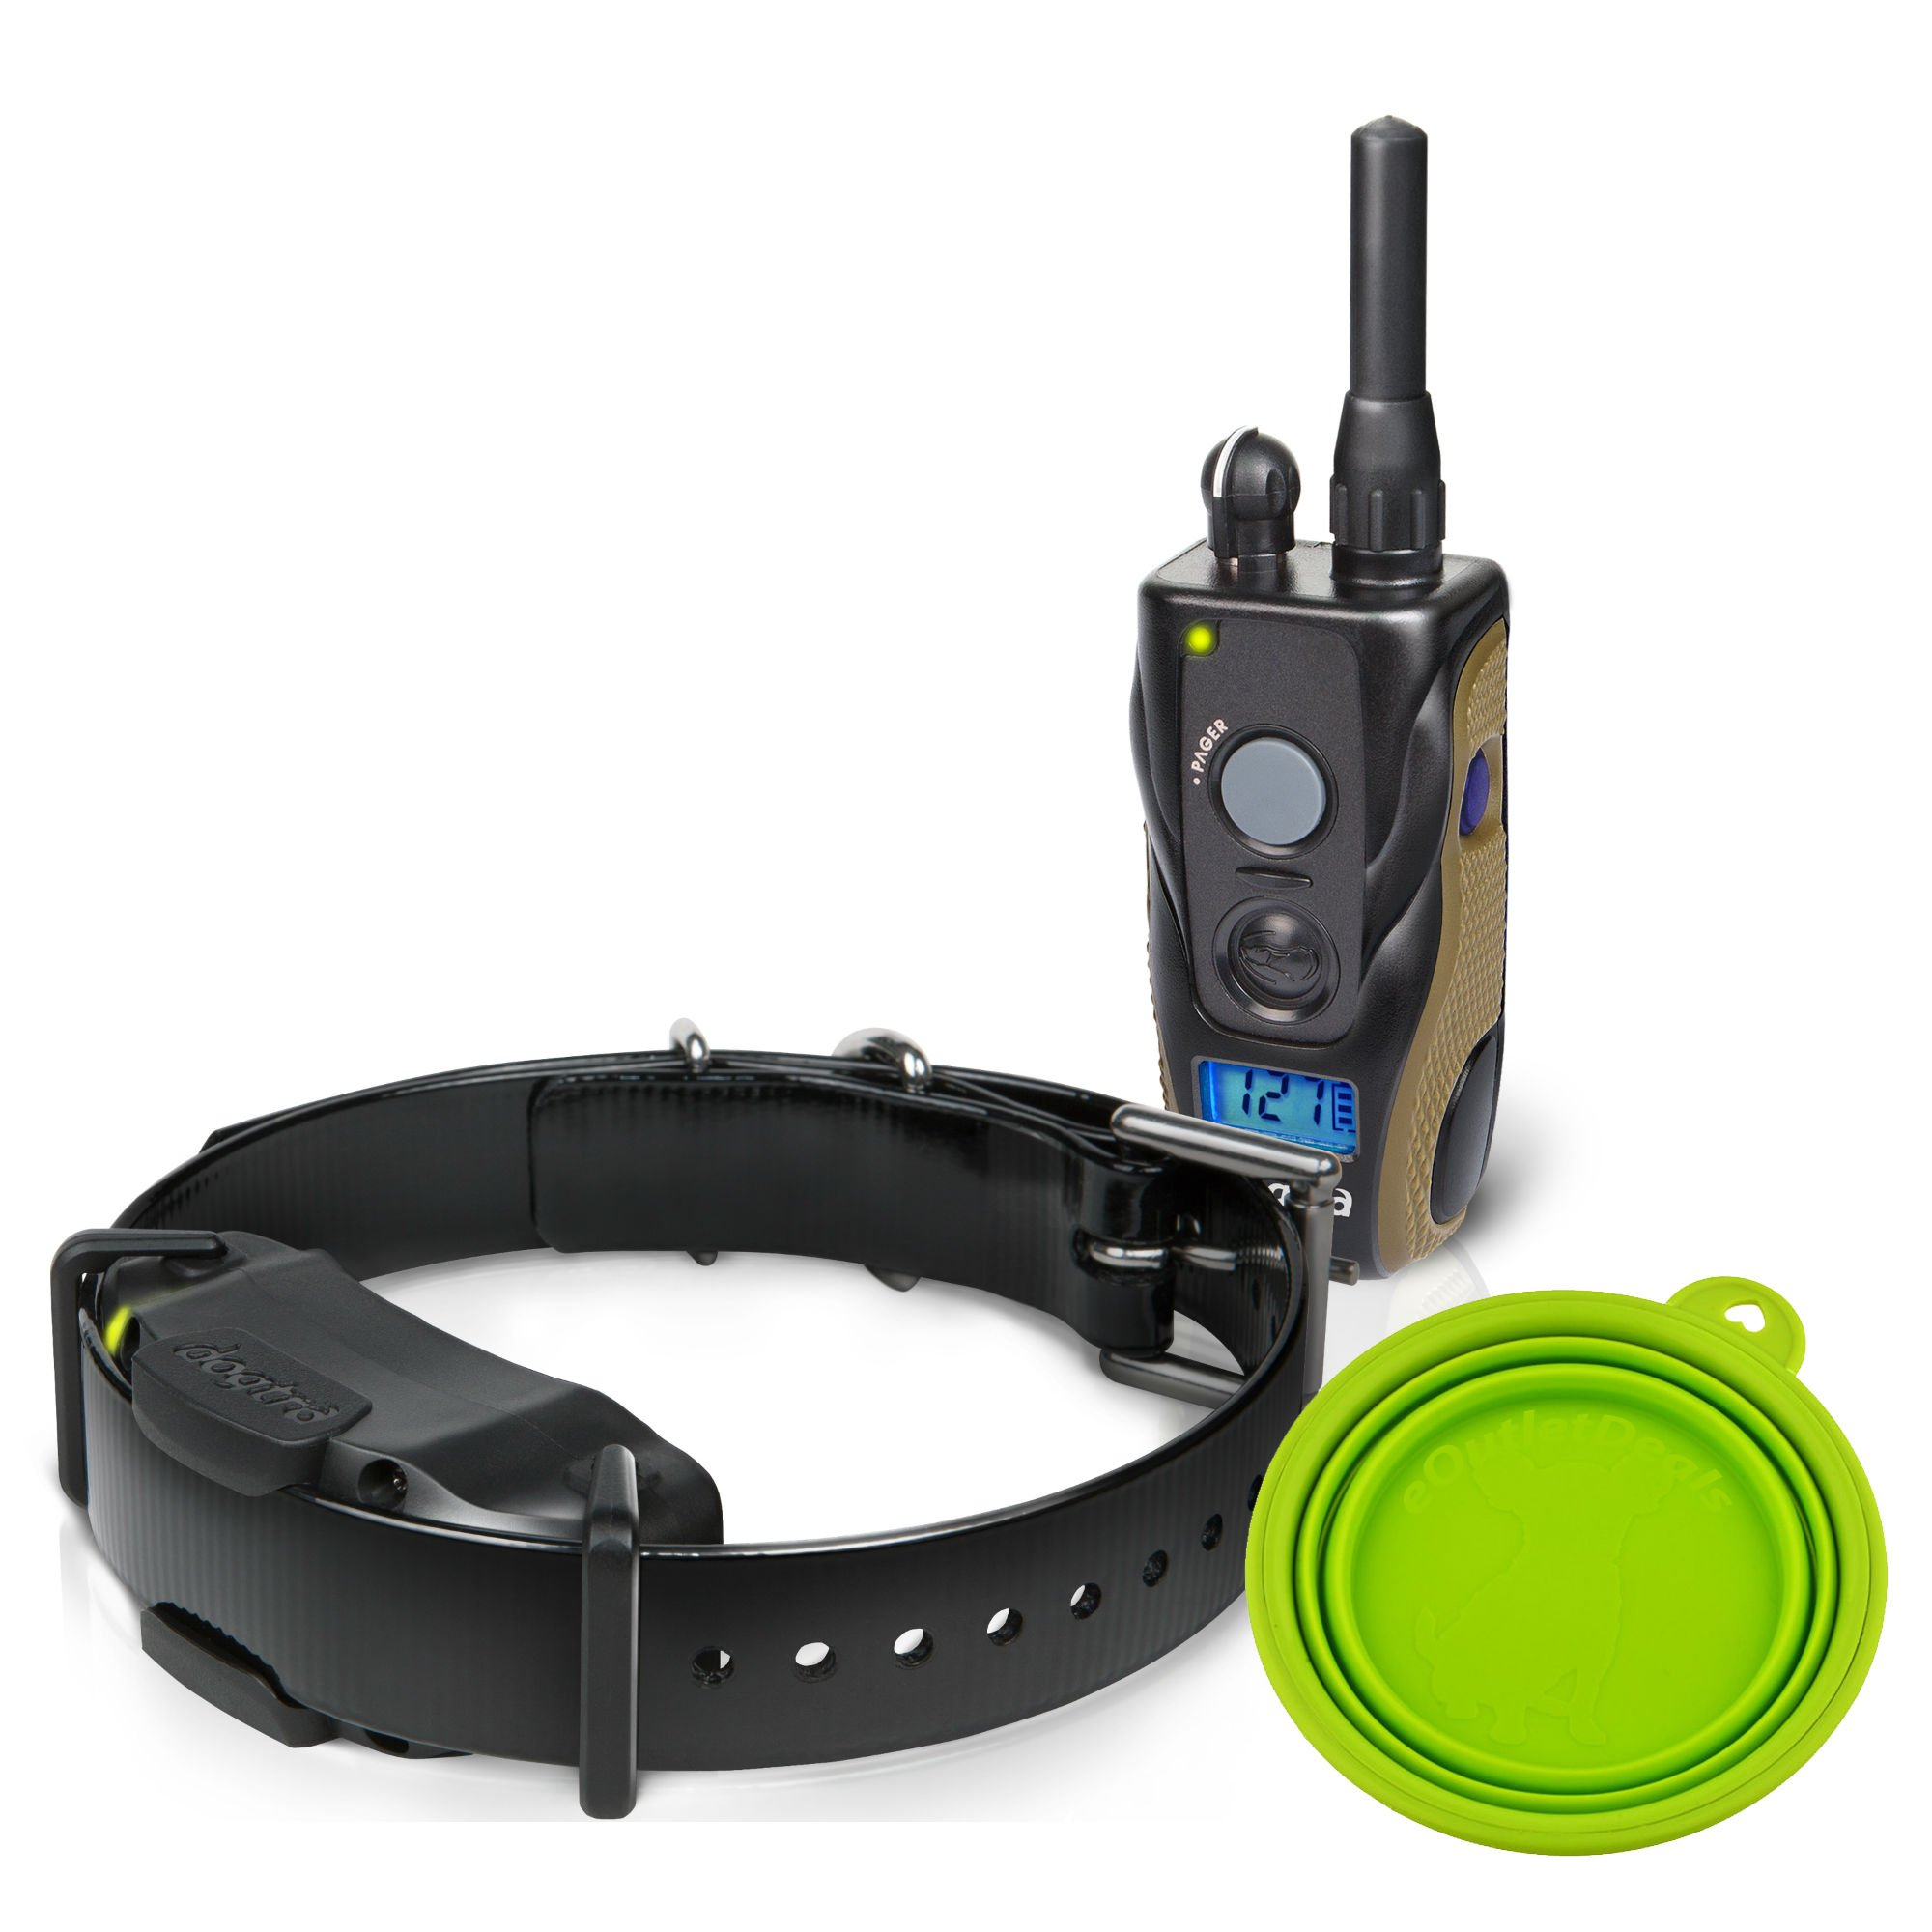 Best Dogtra E Collar Training For Dogs - Field Star 1900S - 3/4 Mile Remote Trainer with LCD Screen - Fully Waterproof Collar - With Free eOutletDeals Value Bundle. by Field Star